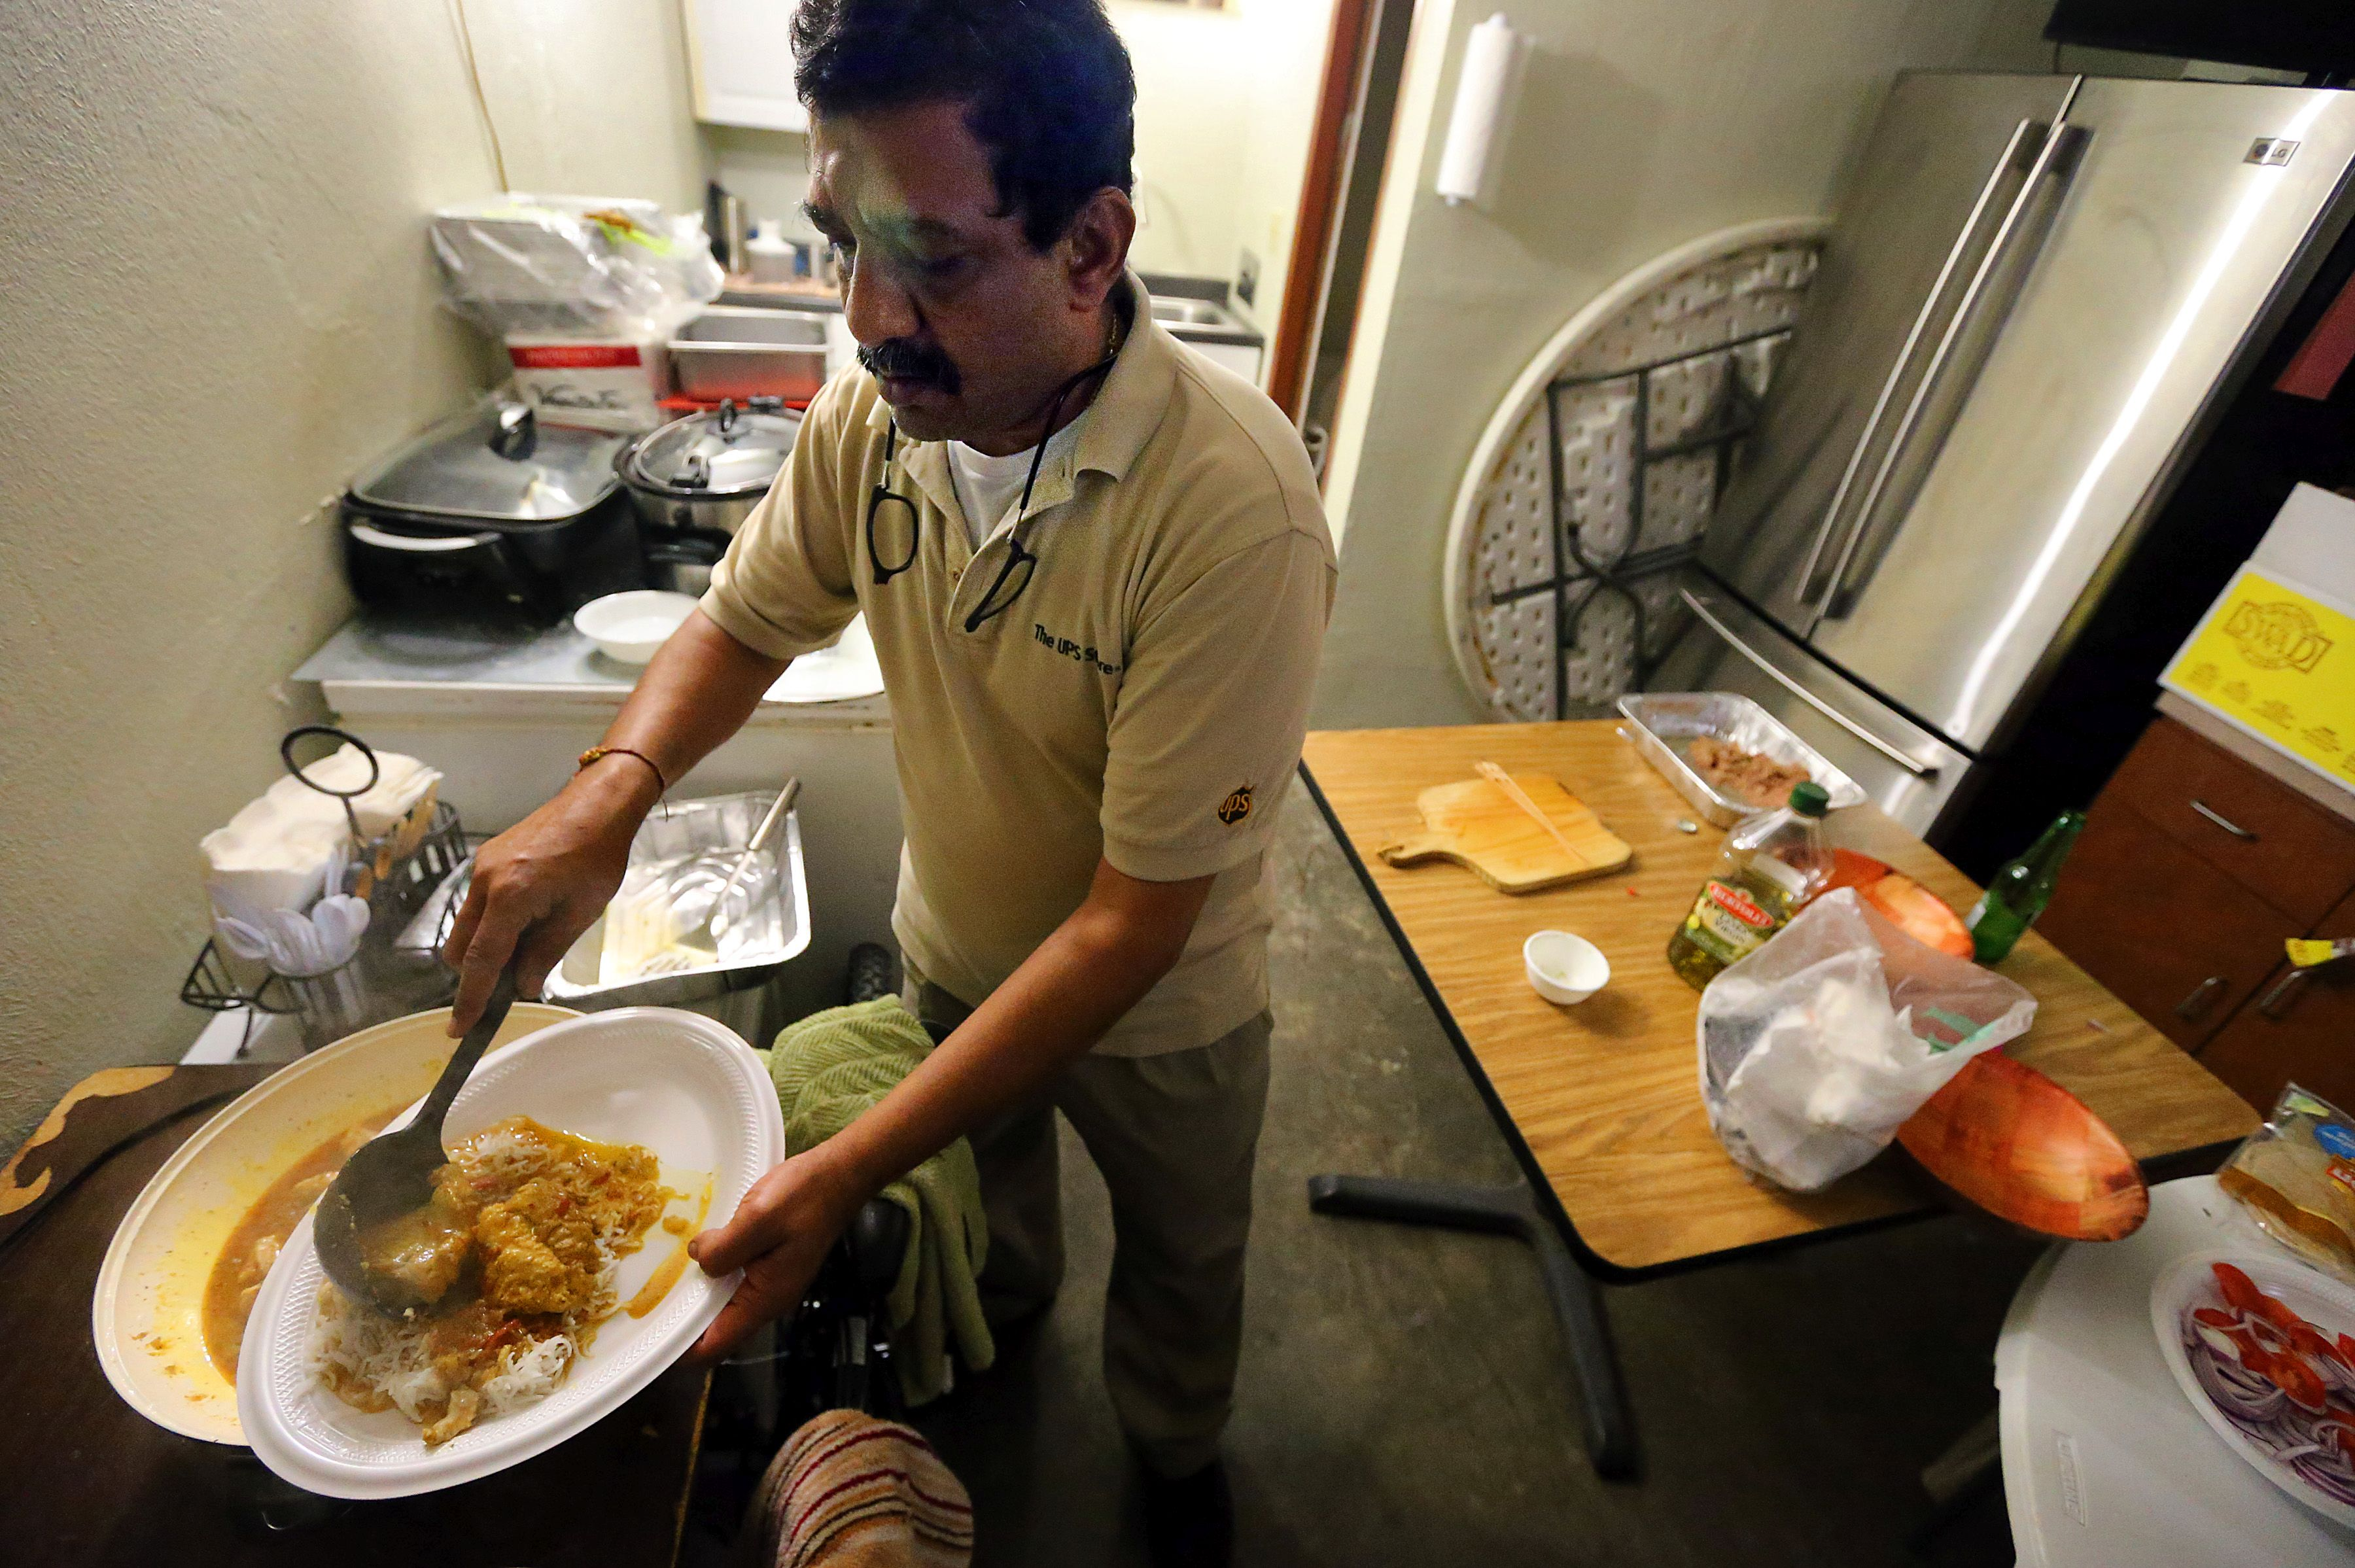 Caption: Vimal Patel cooks inside -- and outside -- a room in the Day's Inn he operates in North Charleston. , Credit: Photo by Wade Spees for the Post & Courier.